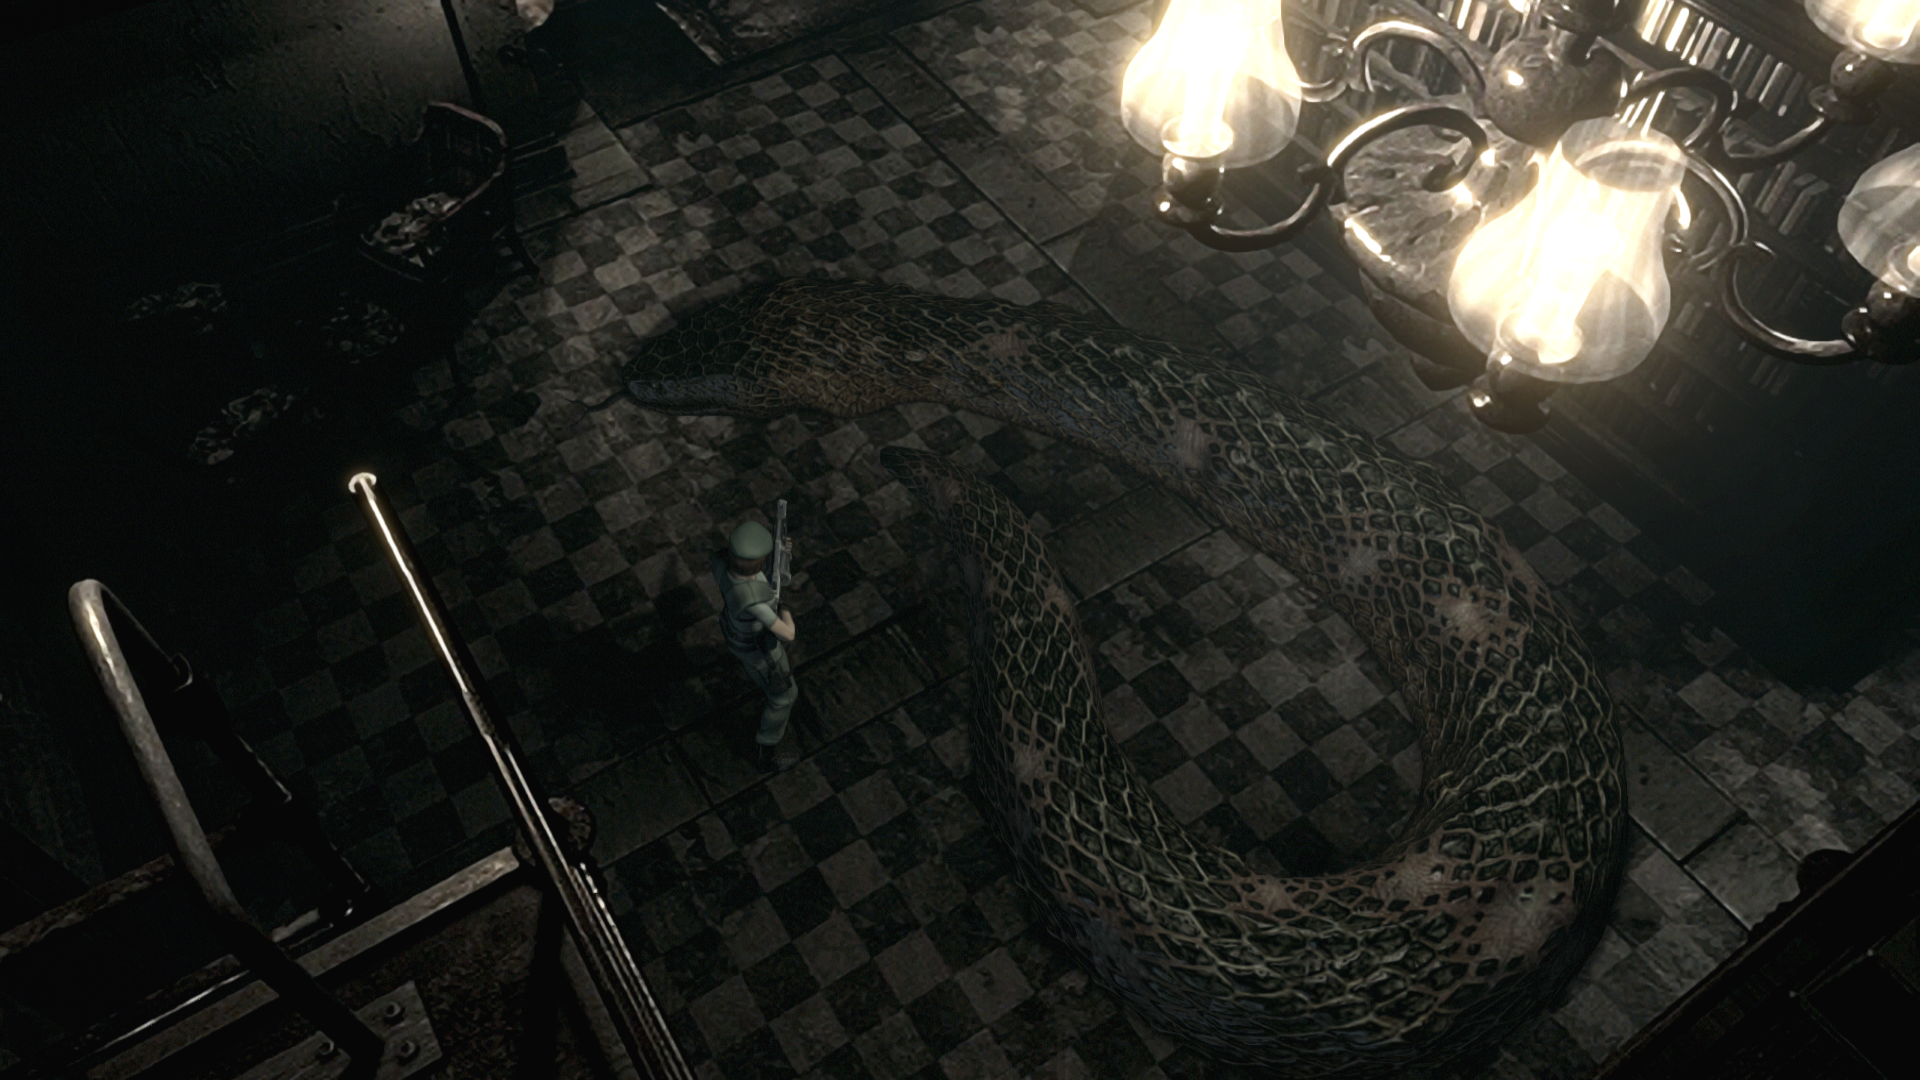 Giant Snake Got Nothin'